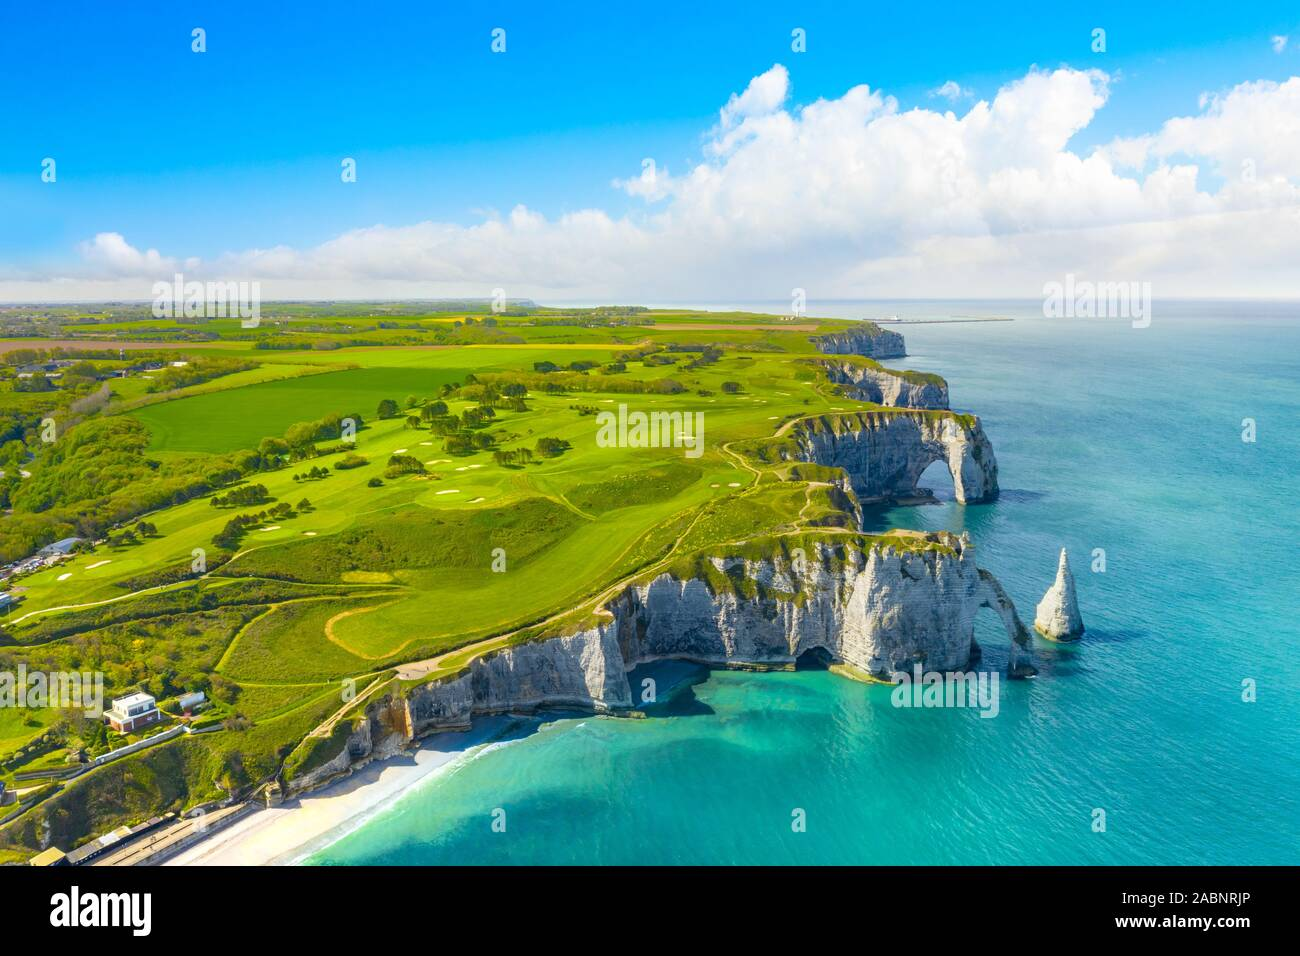 Picturesque Panoramic Landscape On The Cliffs Of Etretat Natural